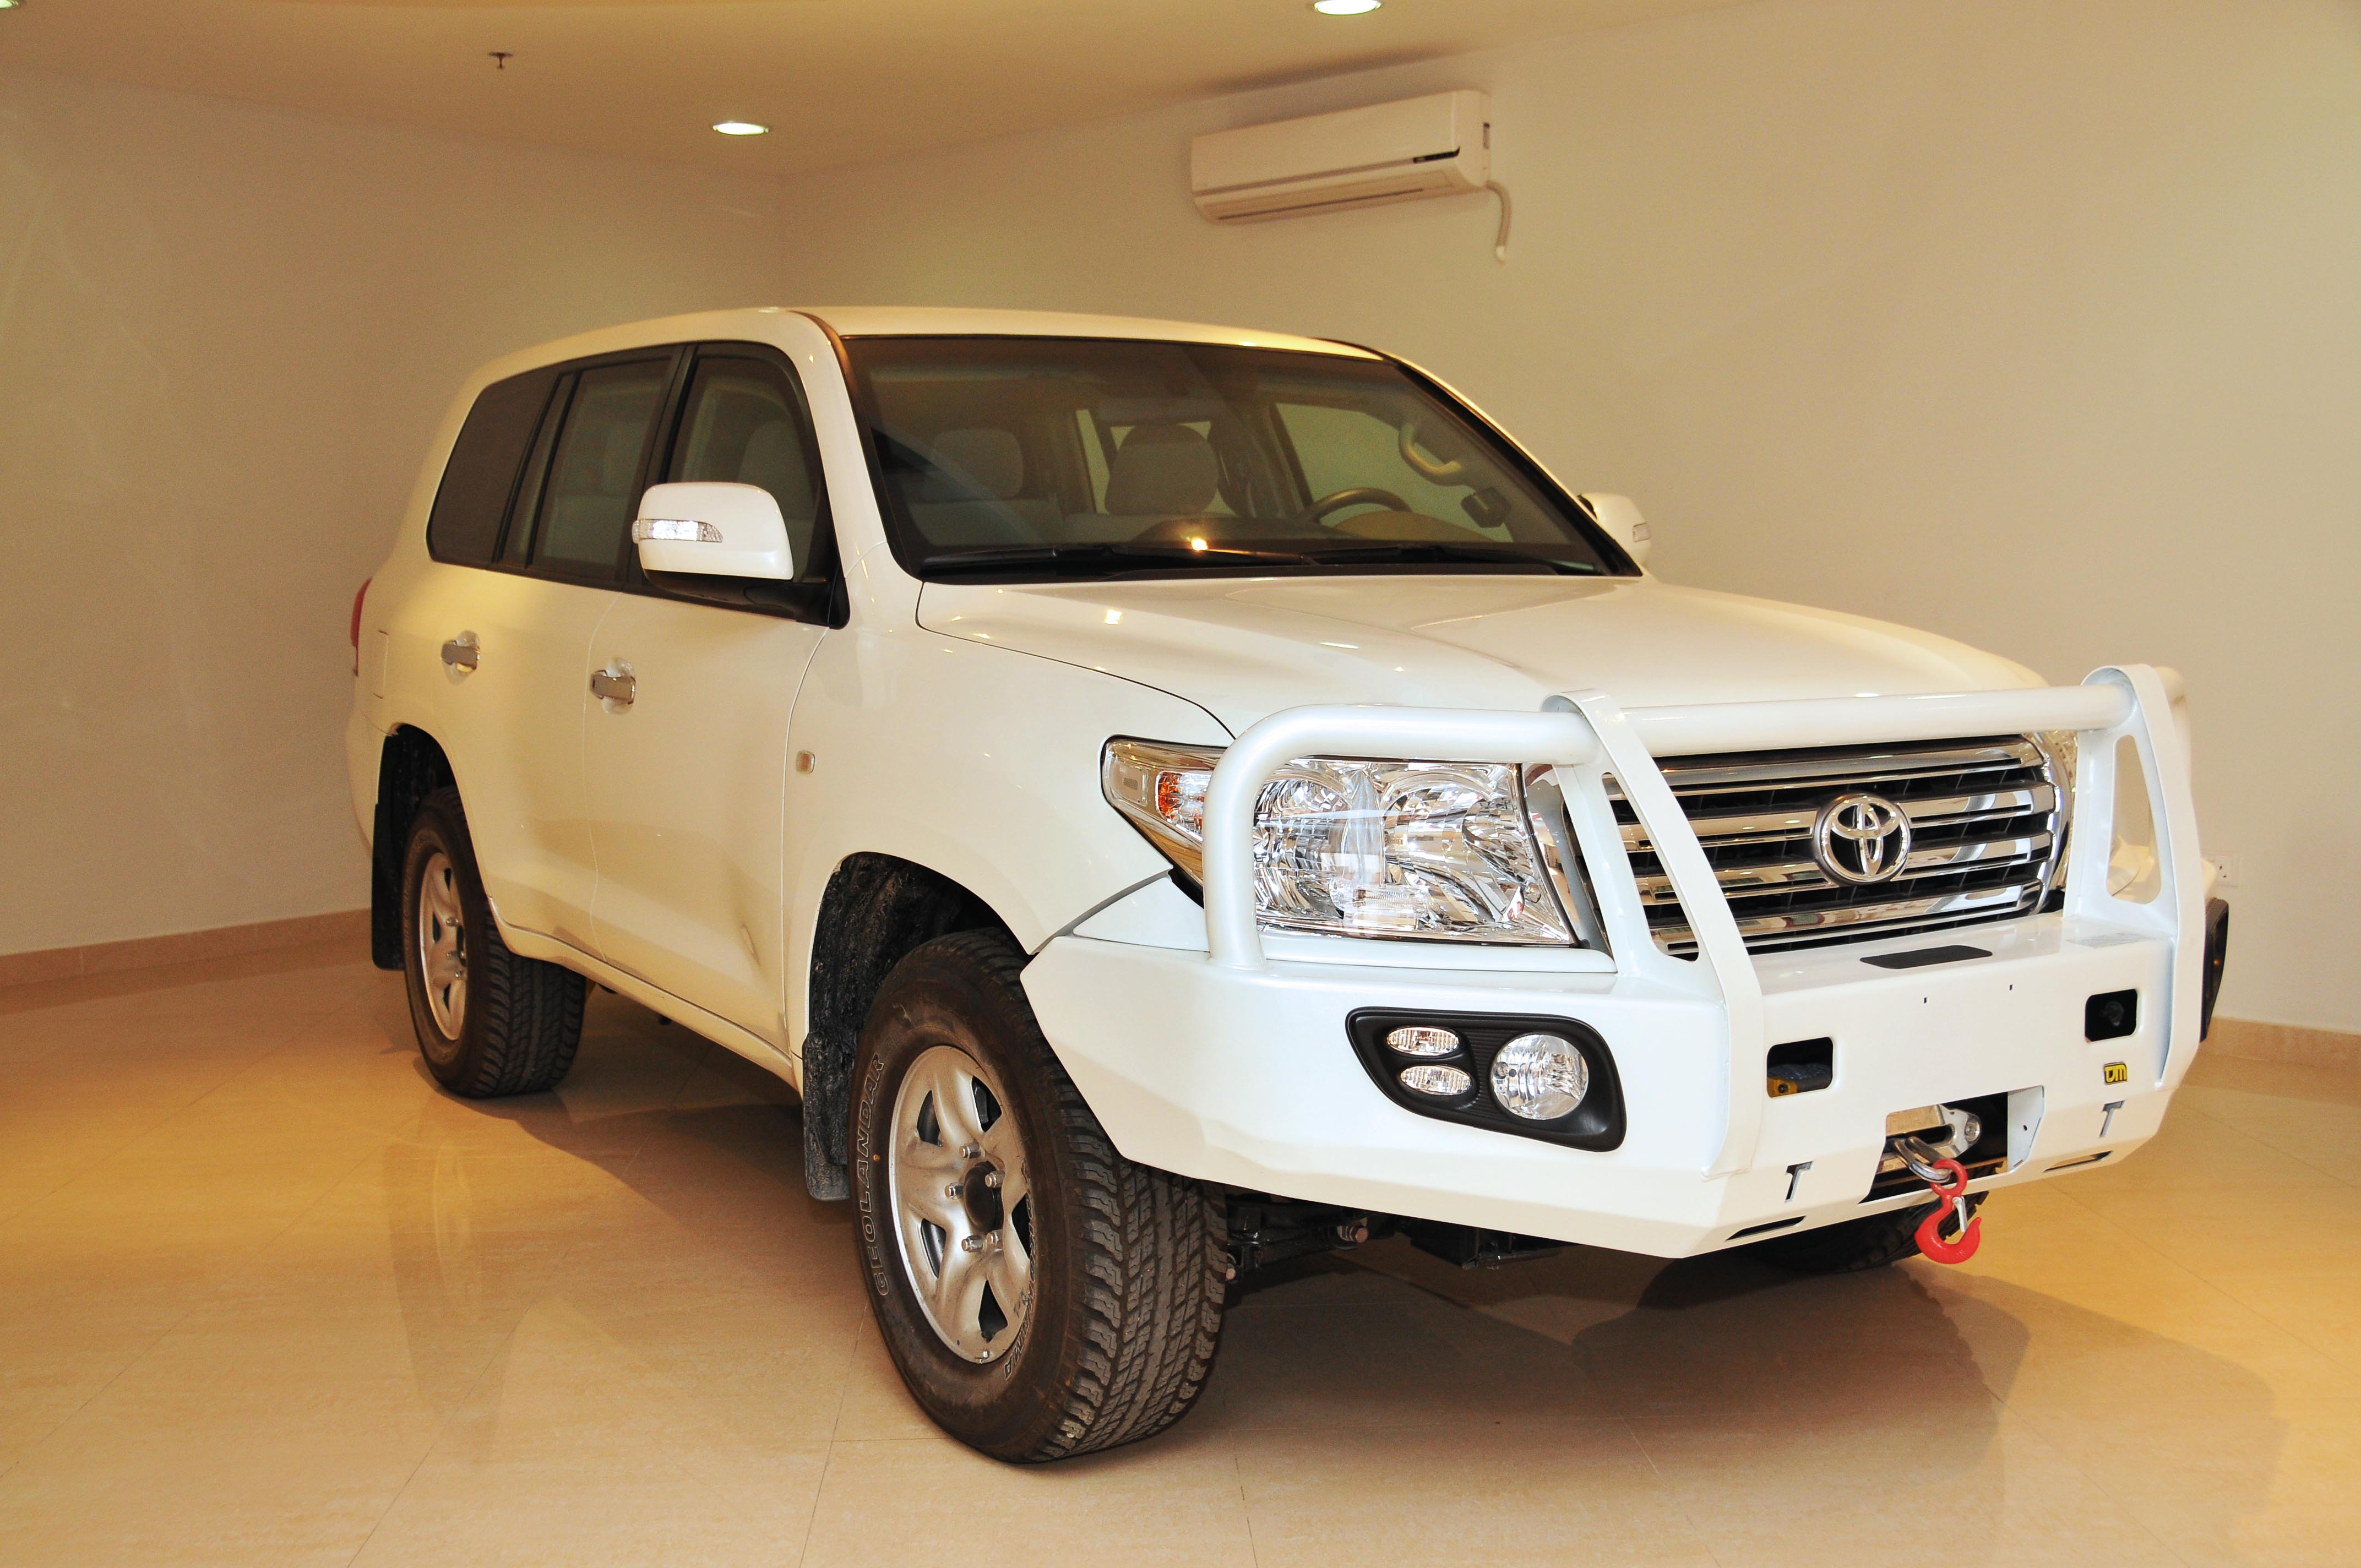 The Armoured Toyota Land Cruiser CIT